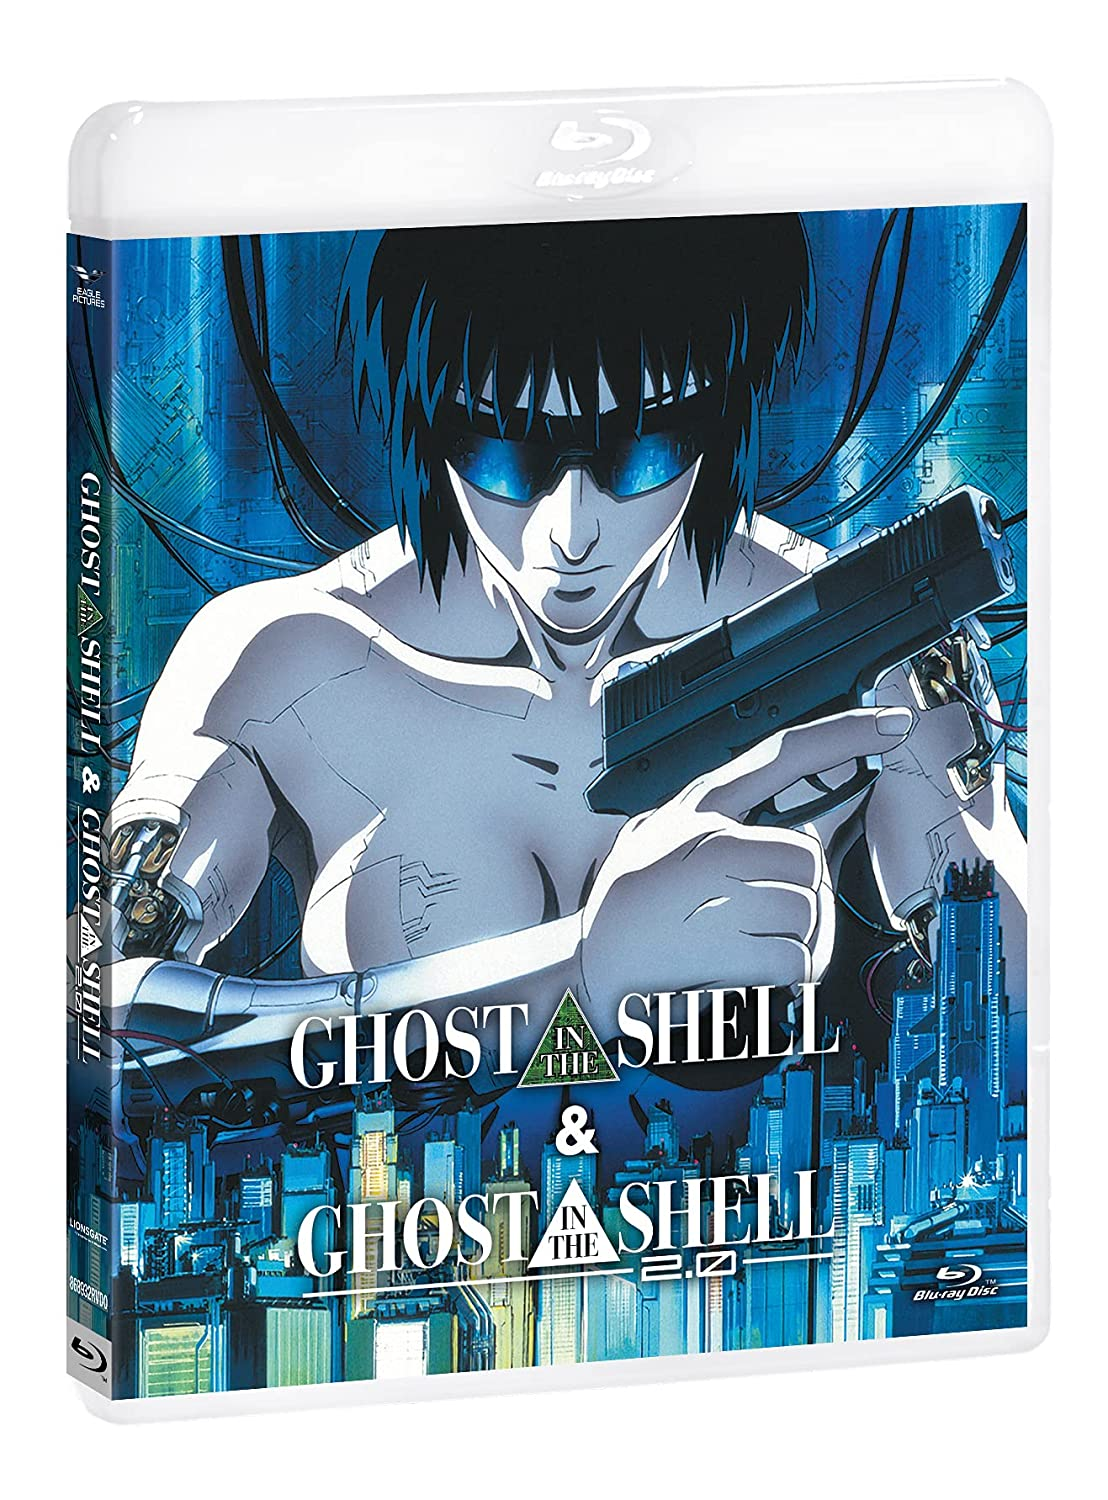 GHOST IN THE SHELL / GHOST IN THE SHELL 2.0 - BLU RAY